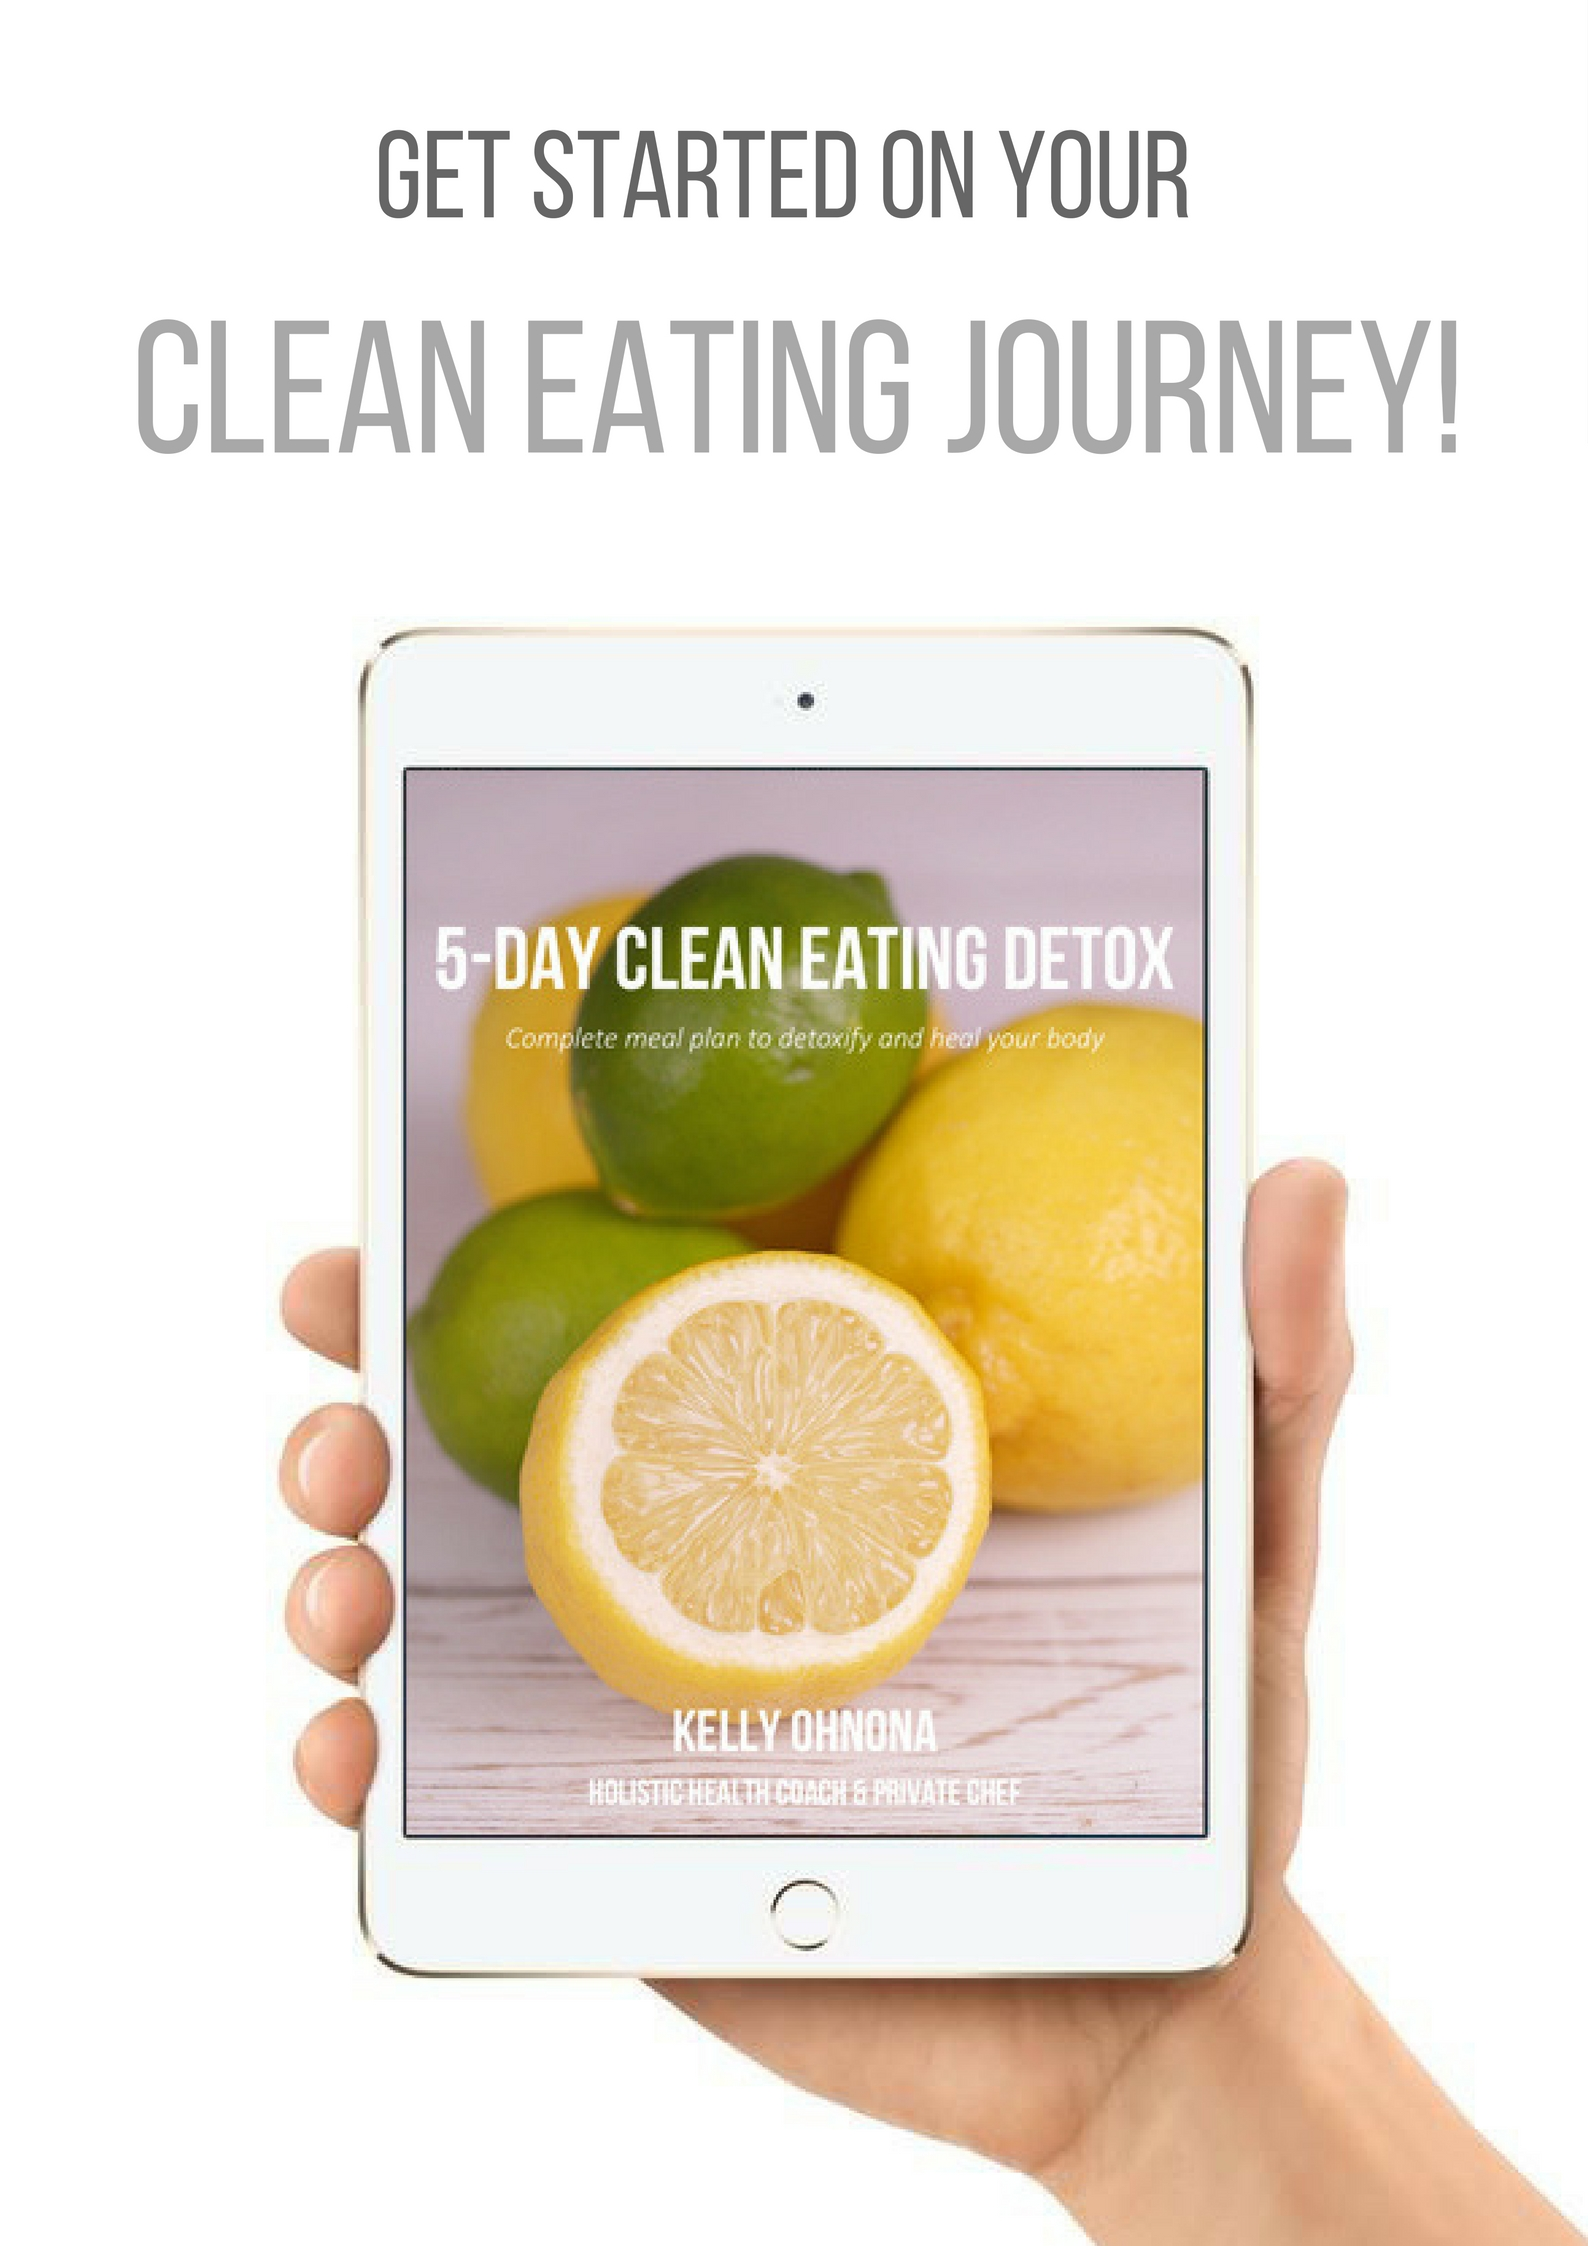 5-day clean eating detox meal plan